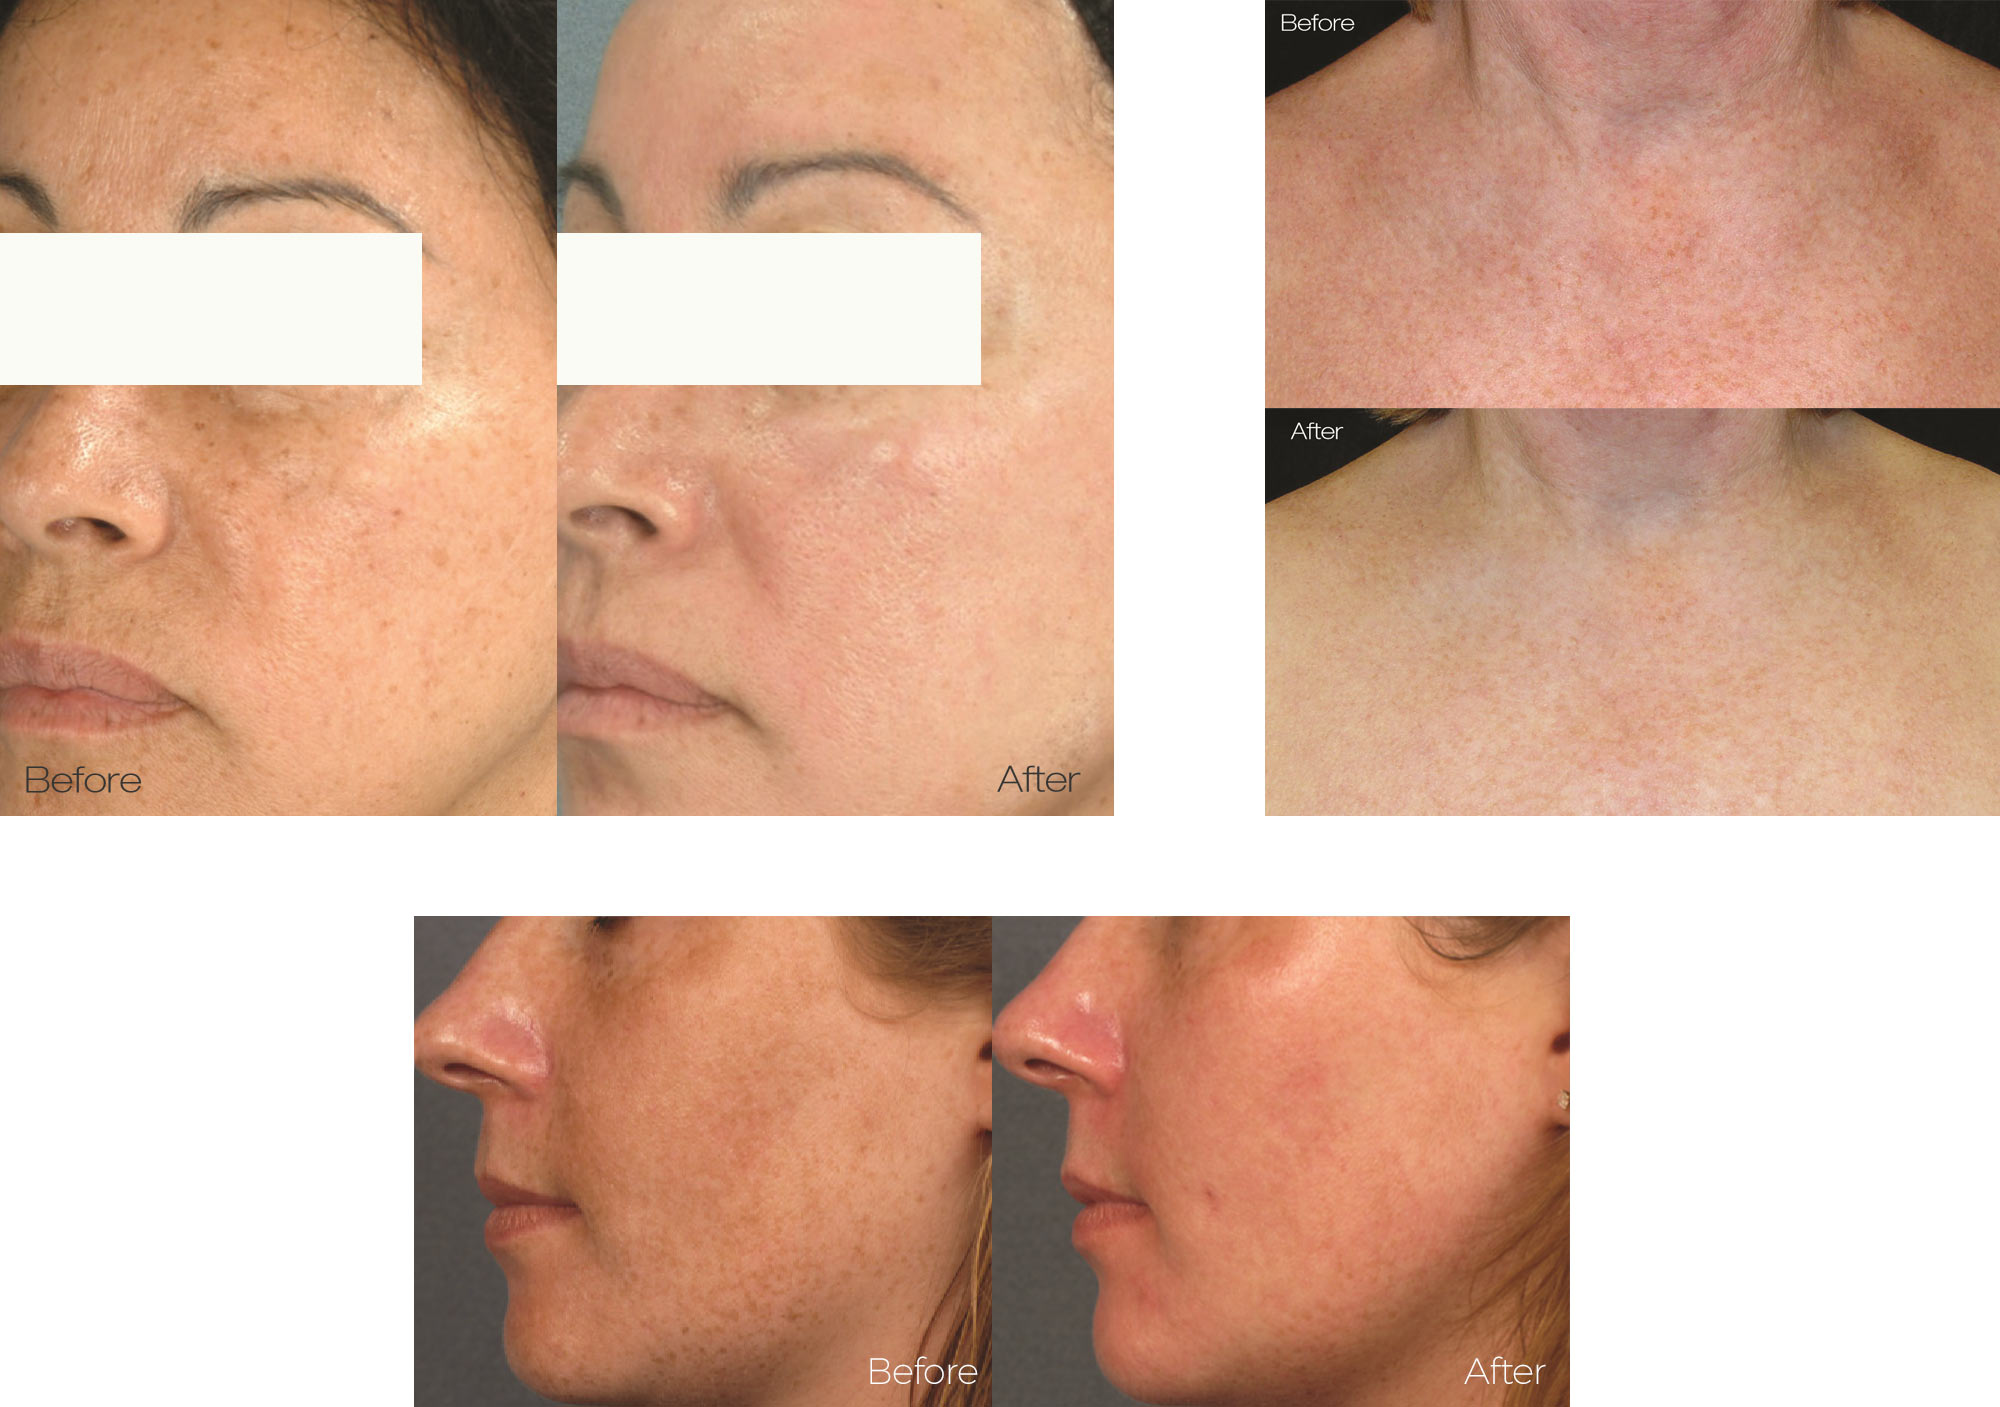 Before and After Photos of LimeLight IPL Treatments